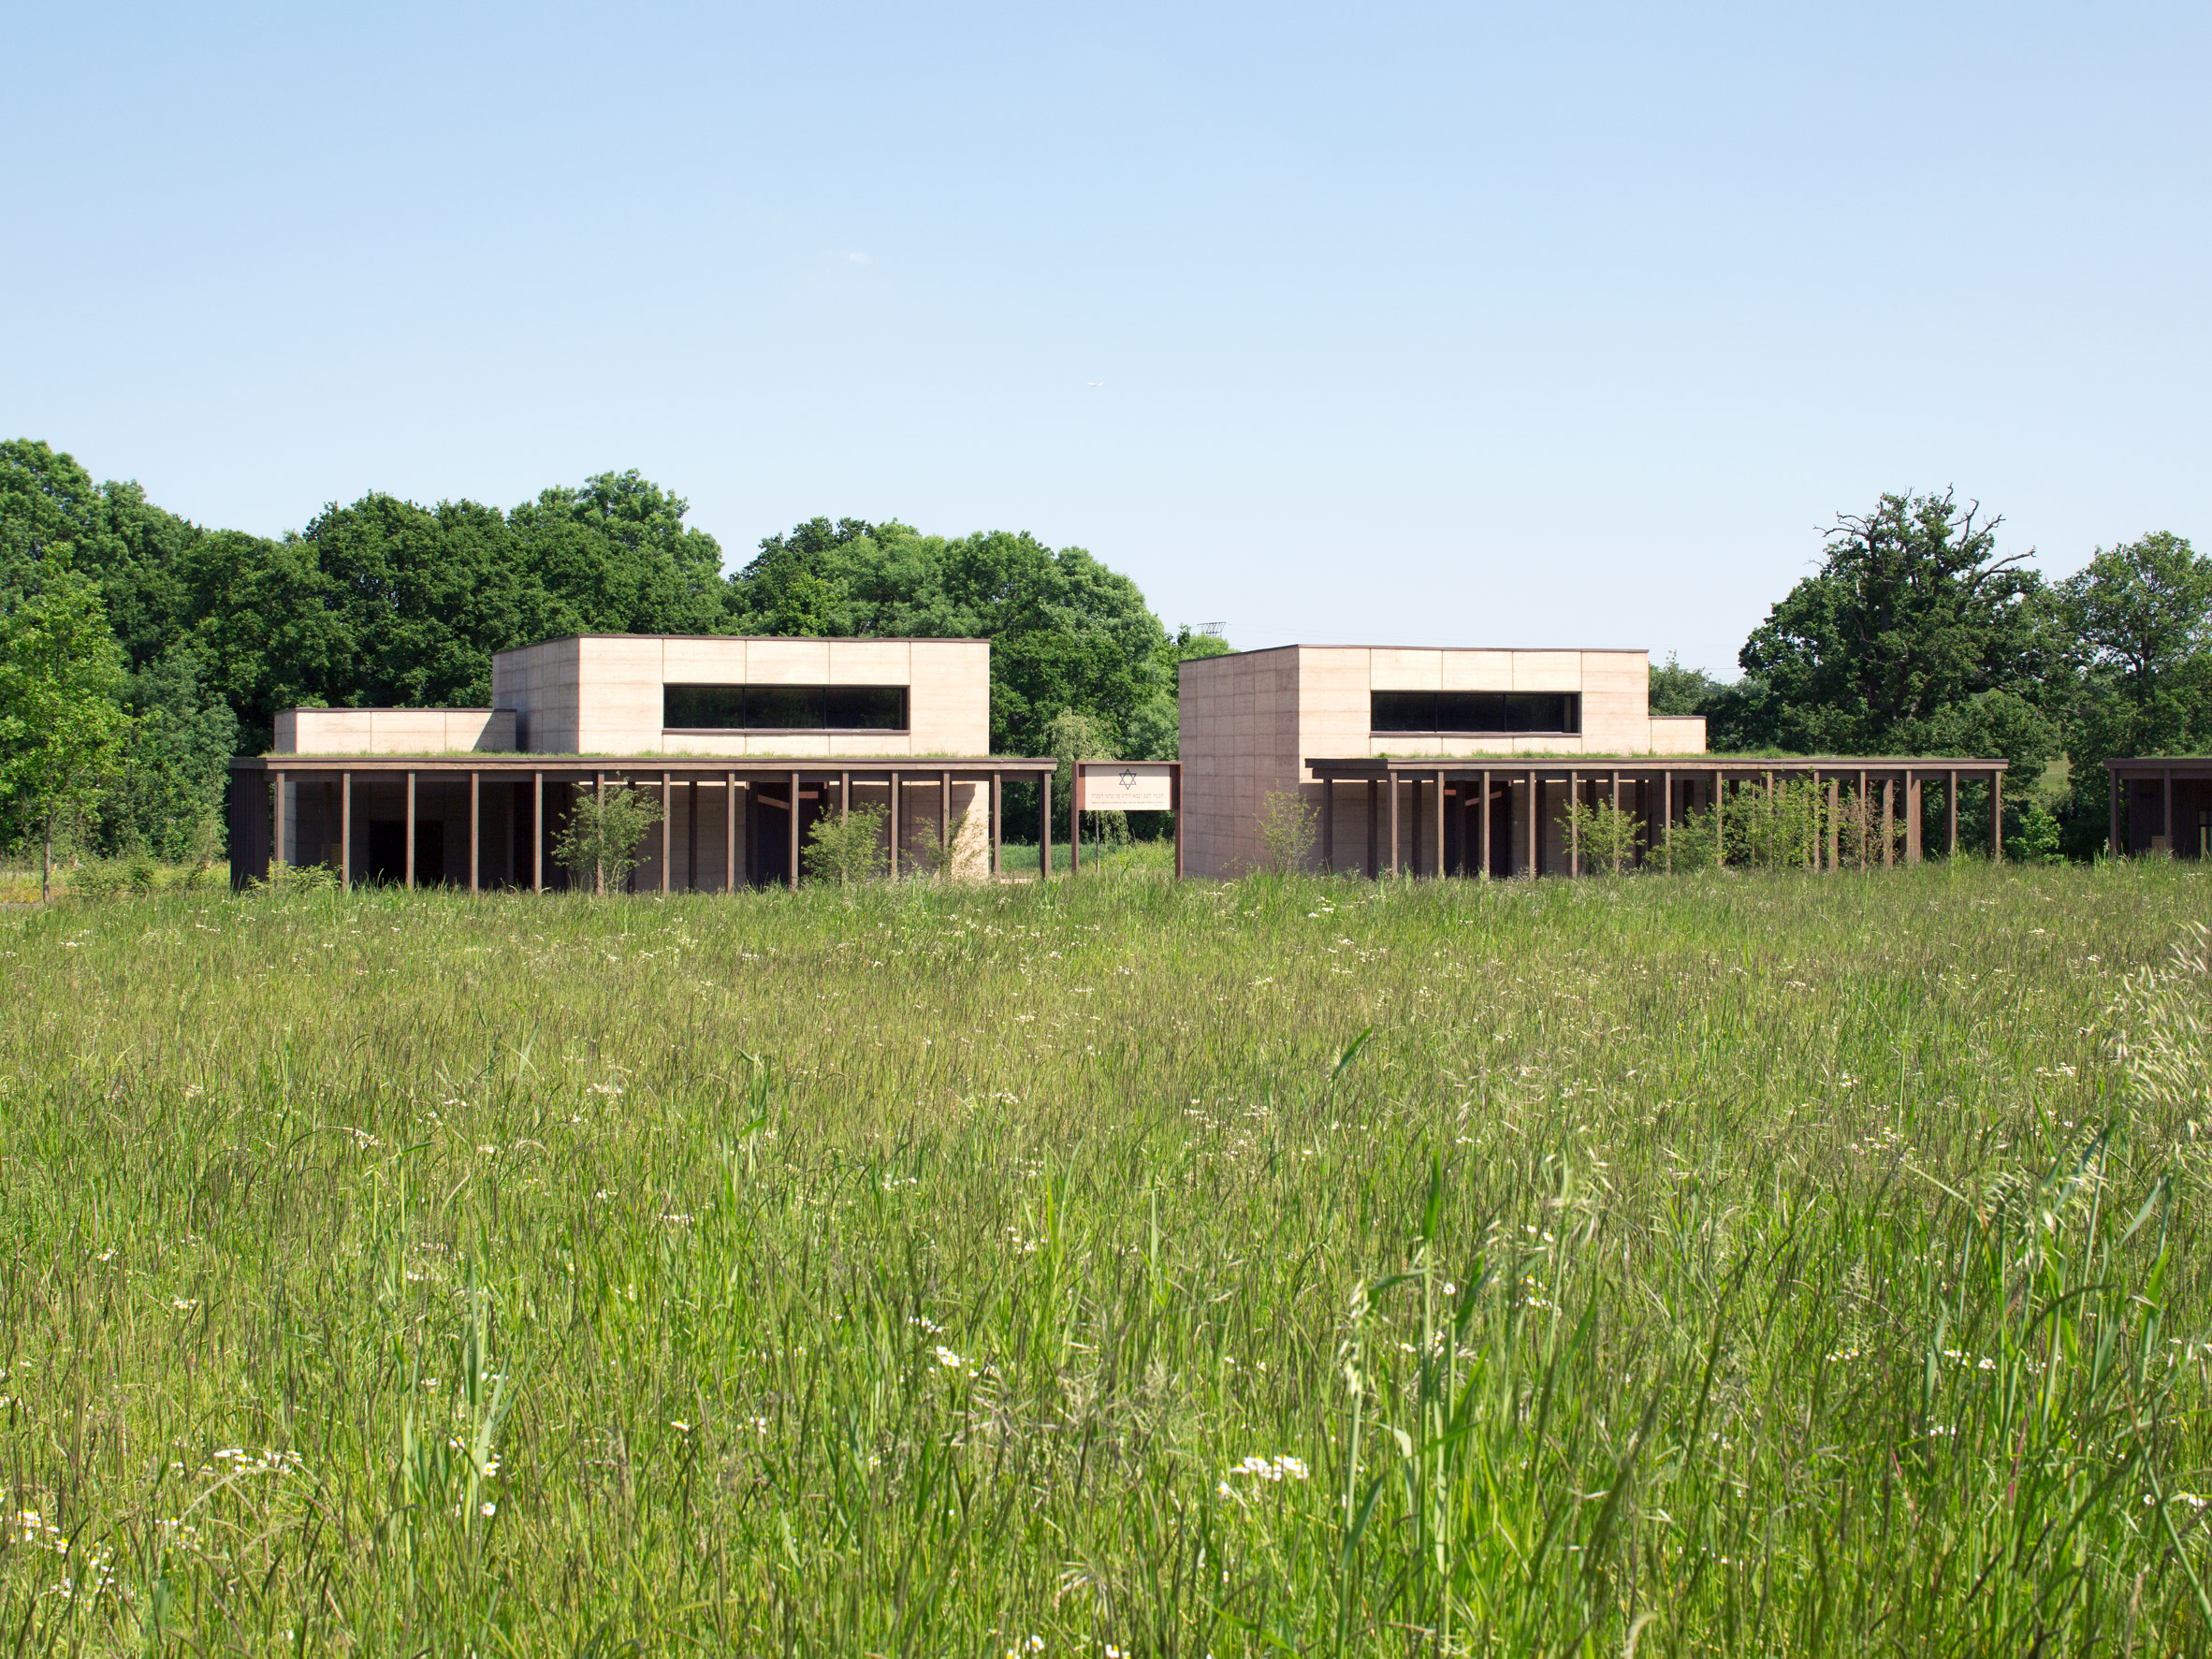 Waugh Thistleton completes cemetery buildings with rammed-earth walls